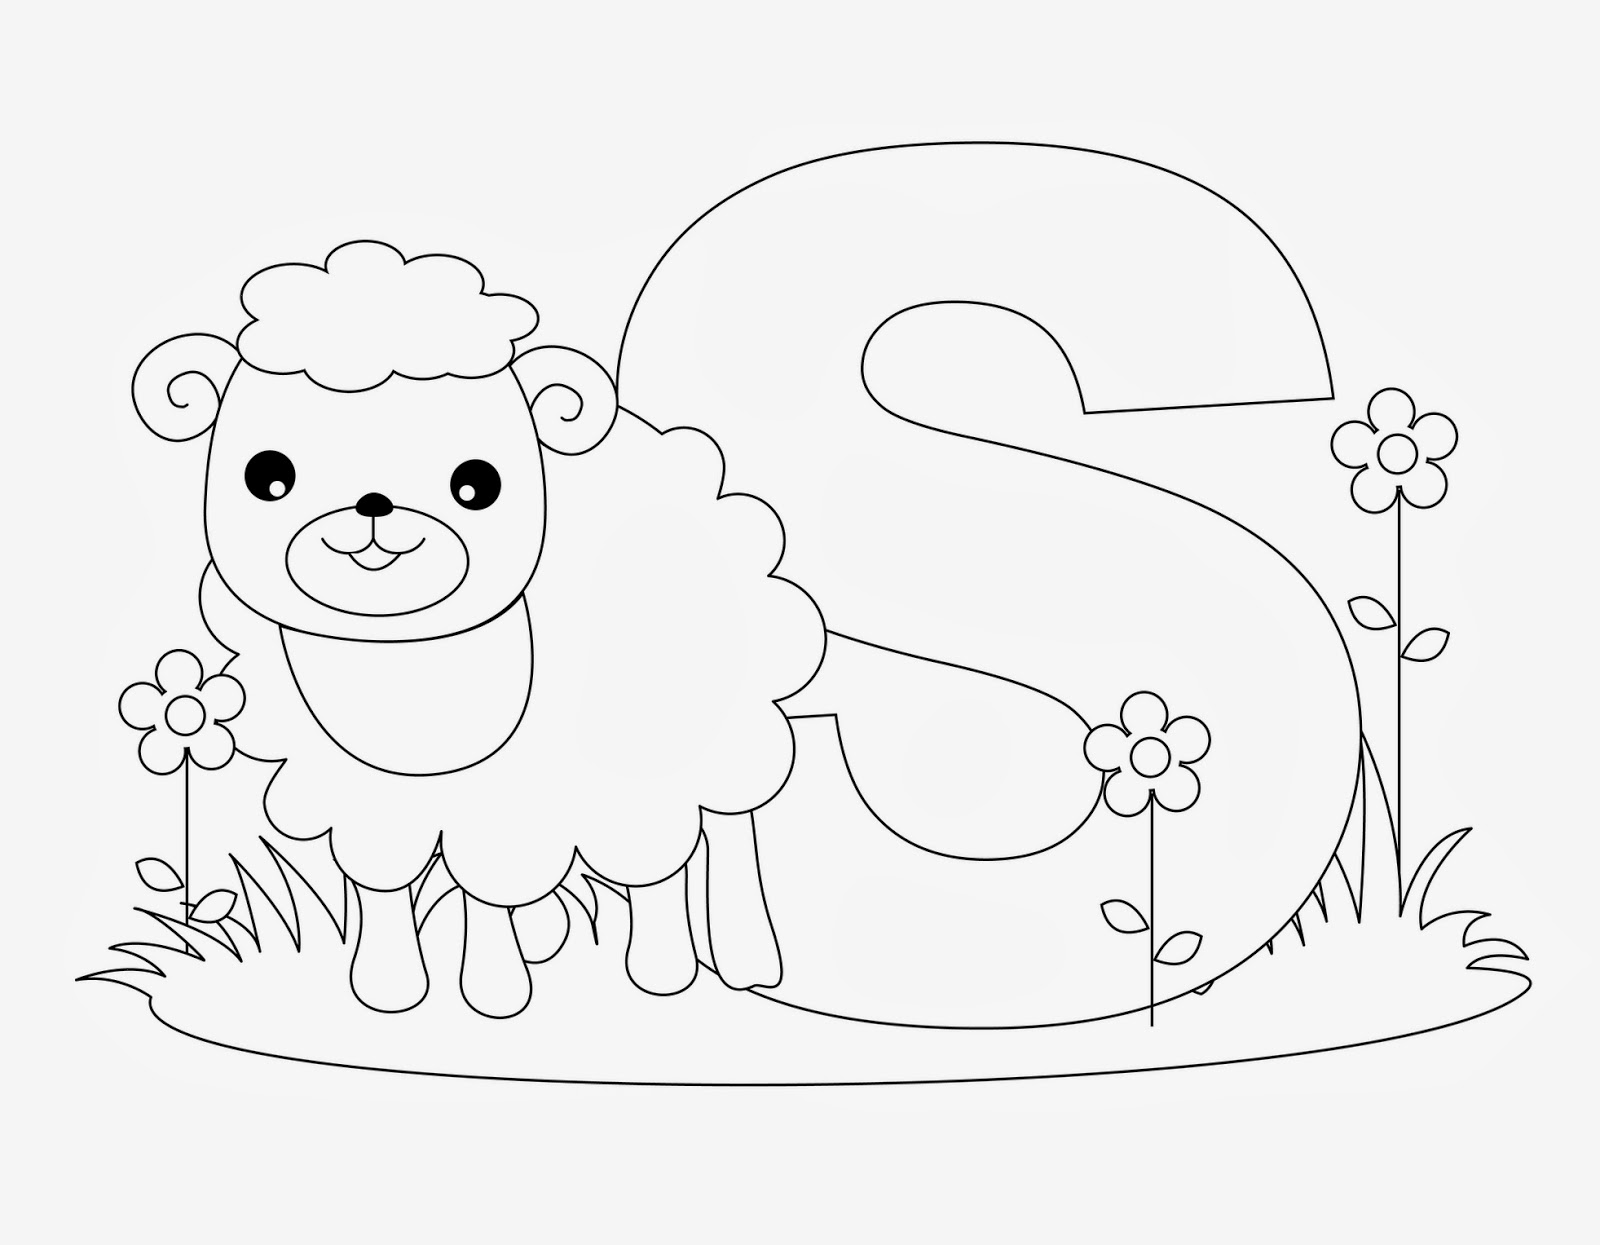 Alphabet i coloring pages - Printable Alphabet Coloring Pages Sheep